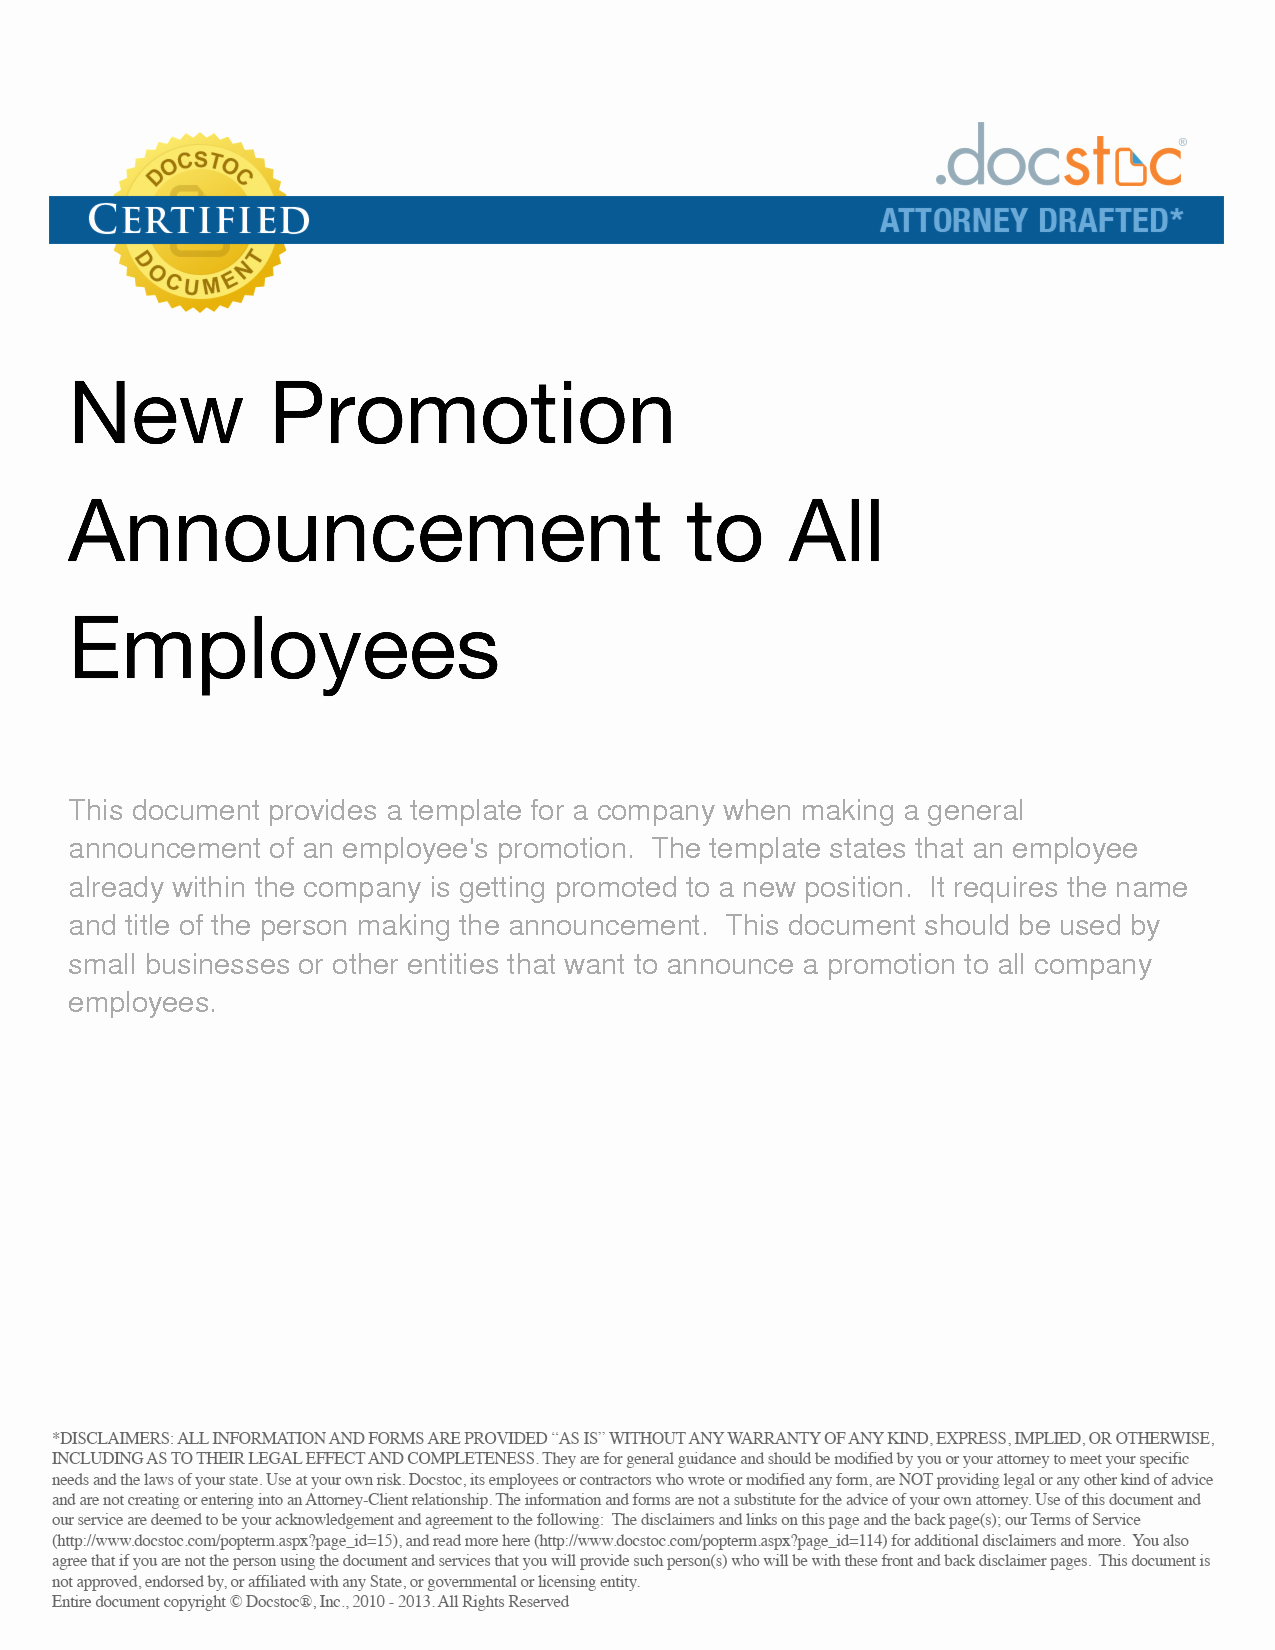 Promotion Announcement Templates Inspirational How to Announce A Promotion